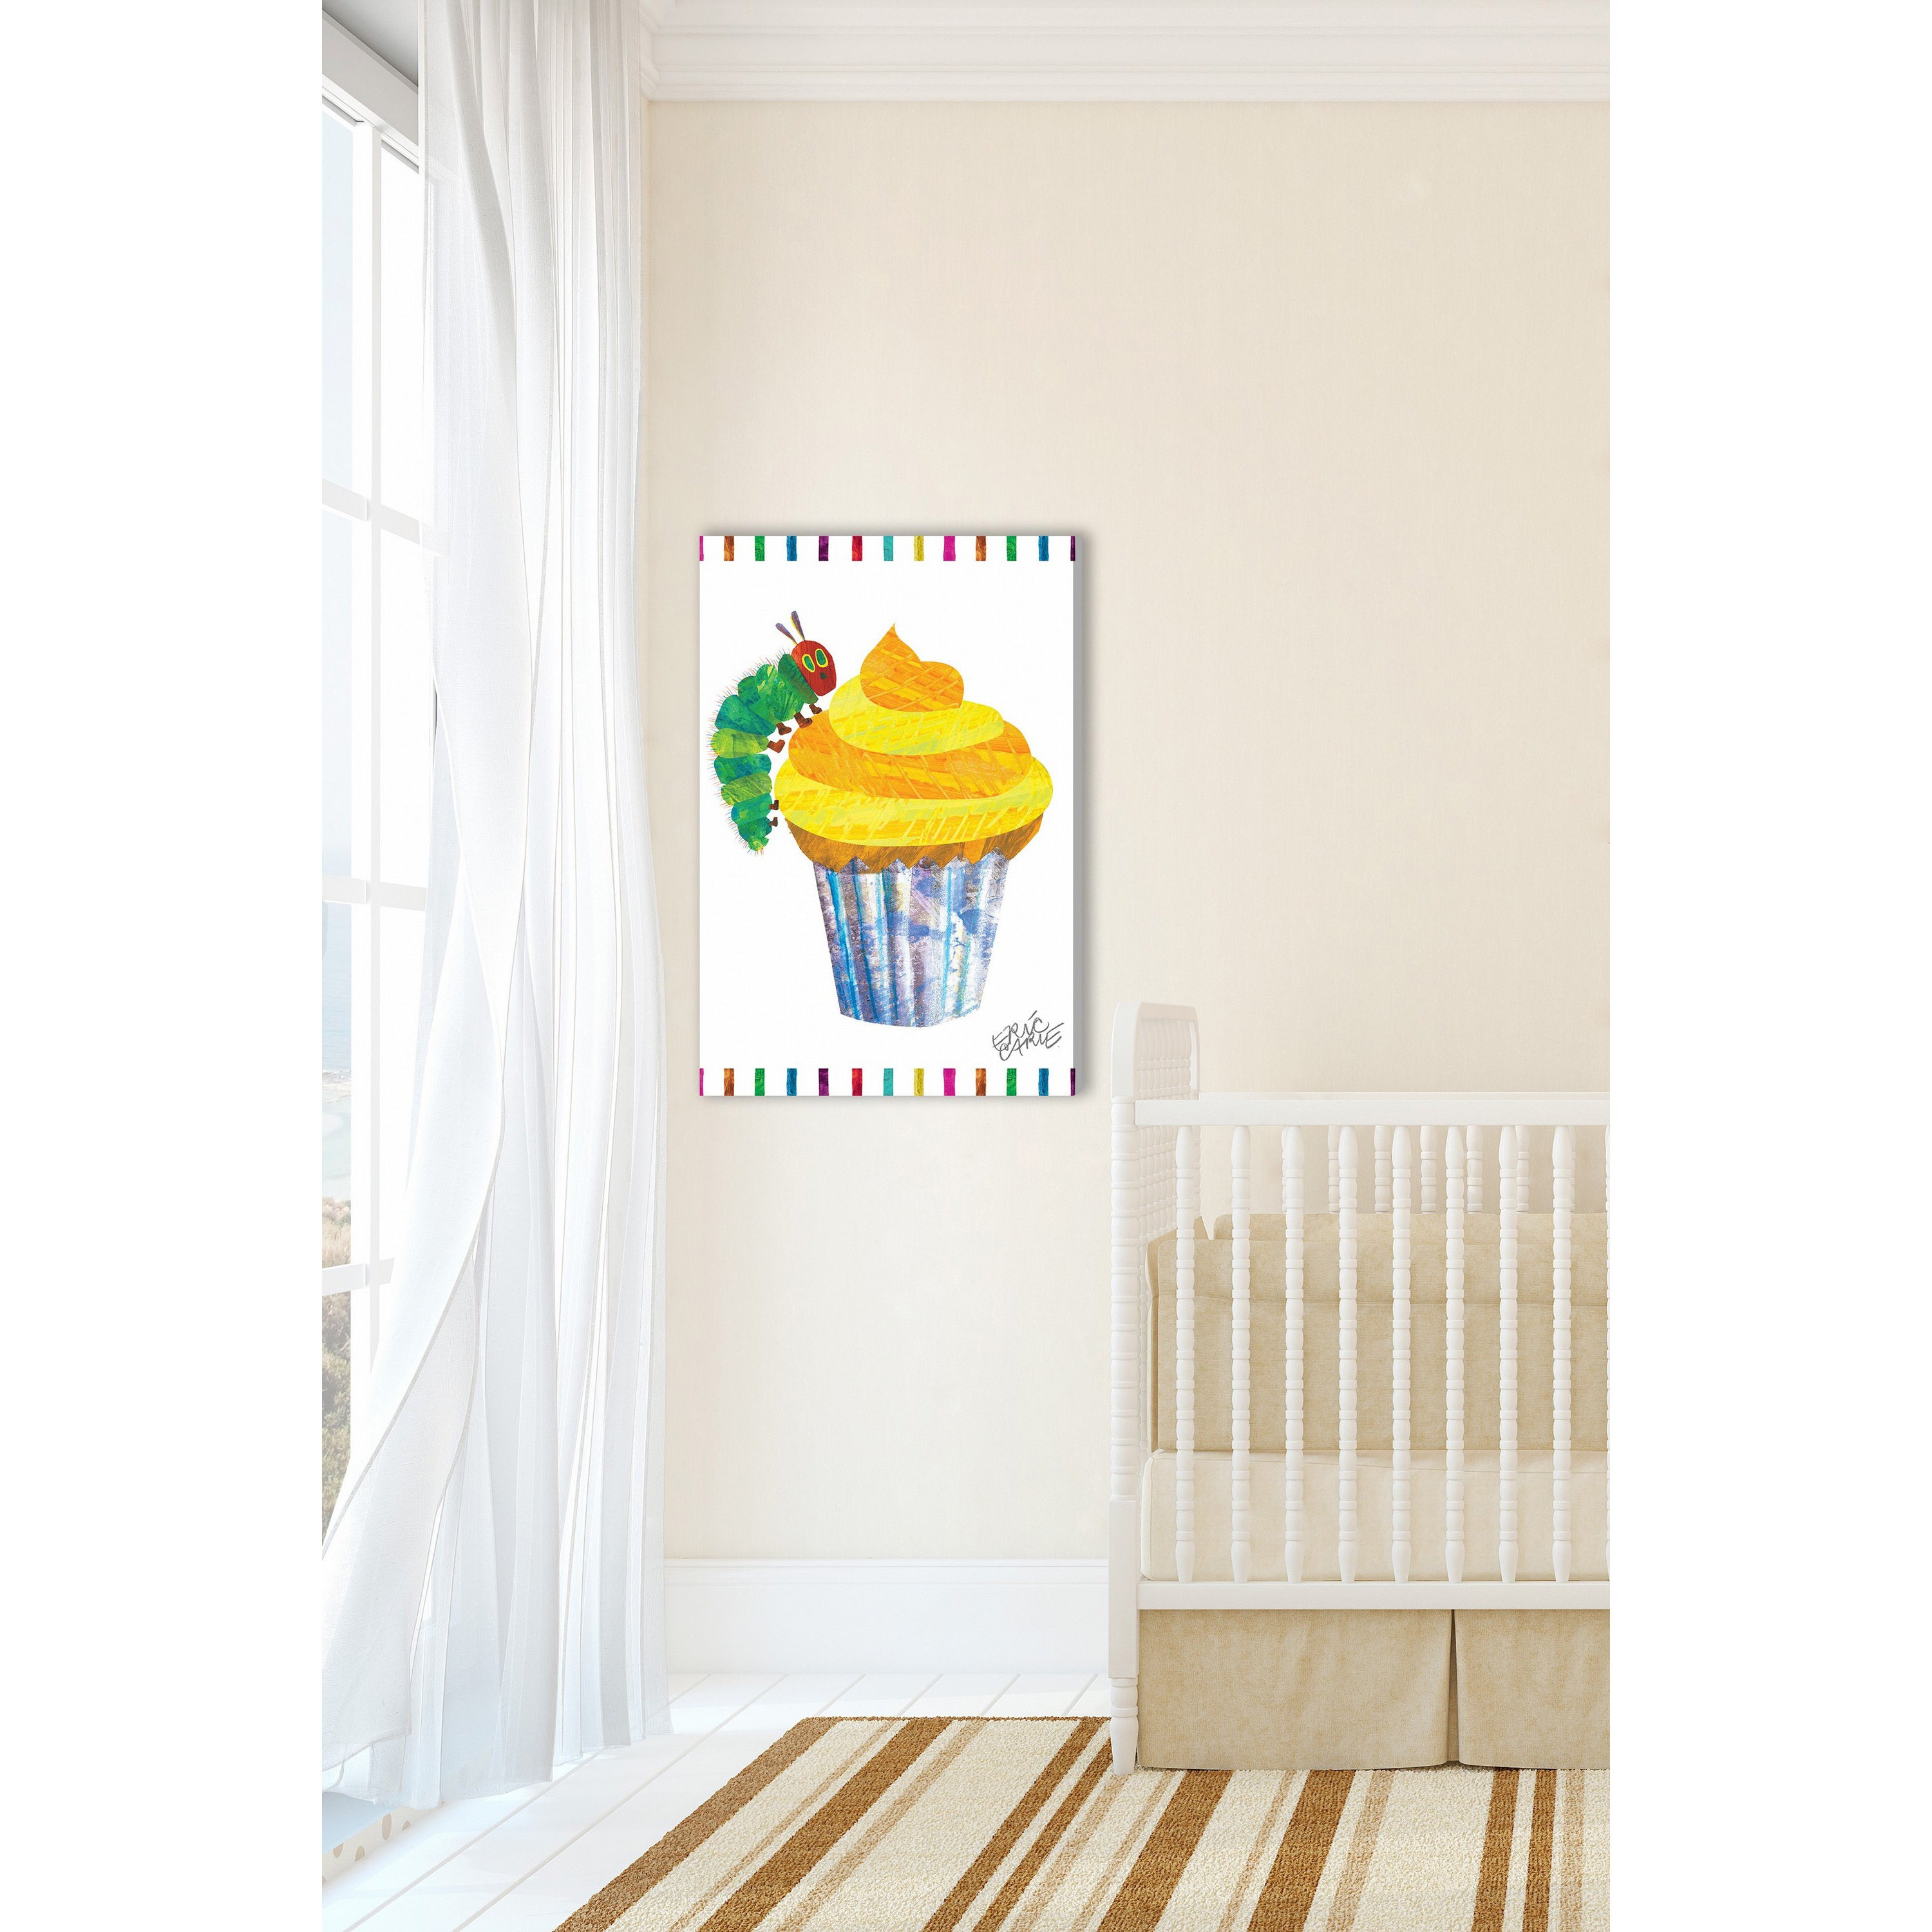 Marmont hill caterpillar cupcake by eric carle painting print on marmont hill caterpillar cupcake by eric carle painting print on canvas free shipping today overstock 17882901 nvjuhfo Choice Image